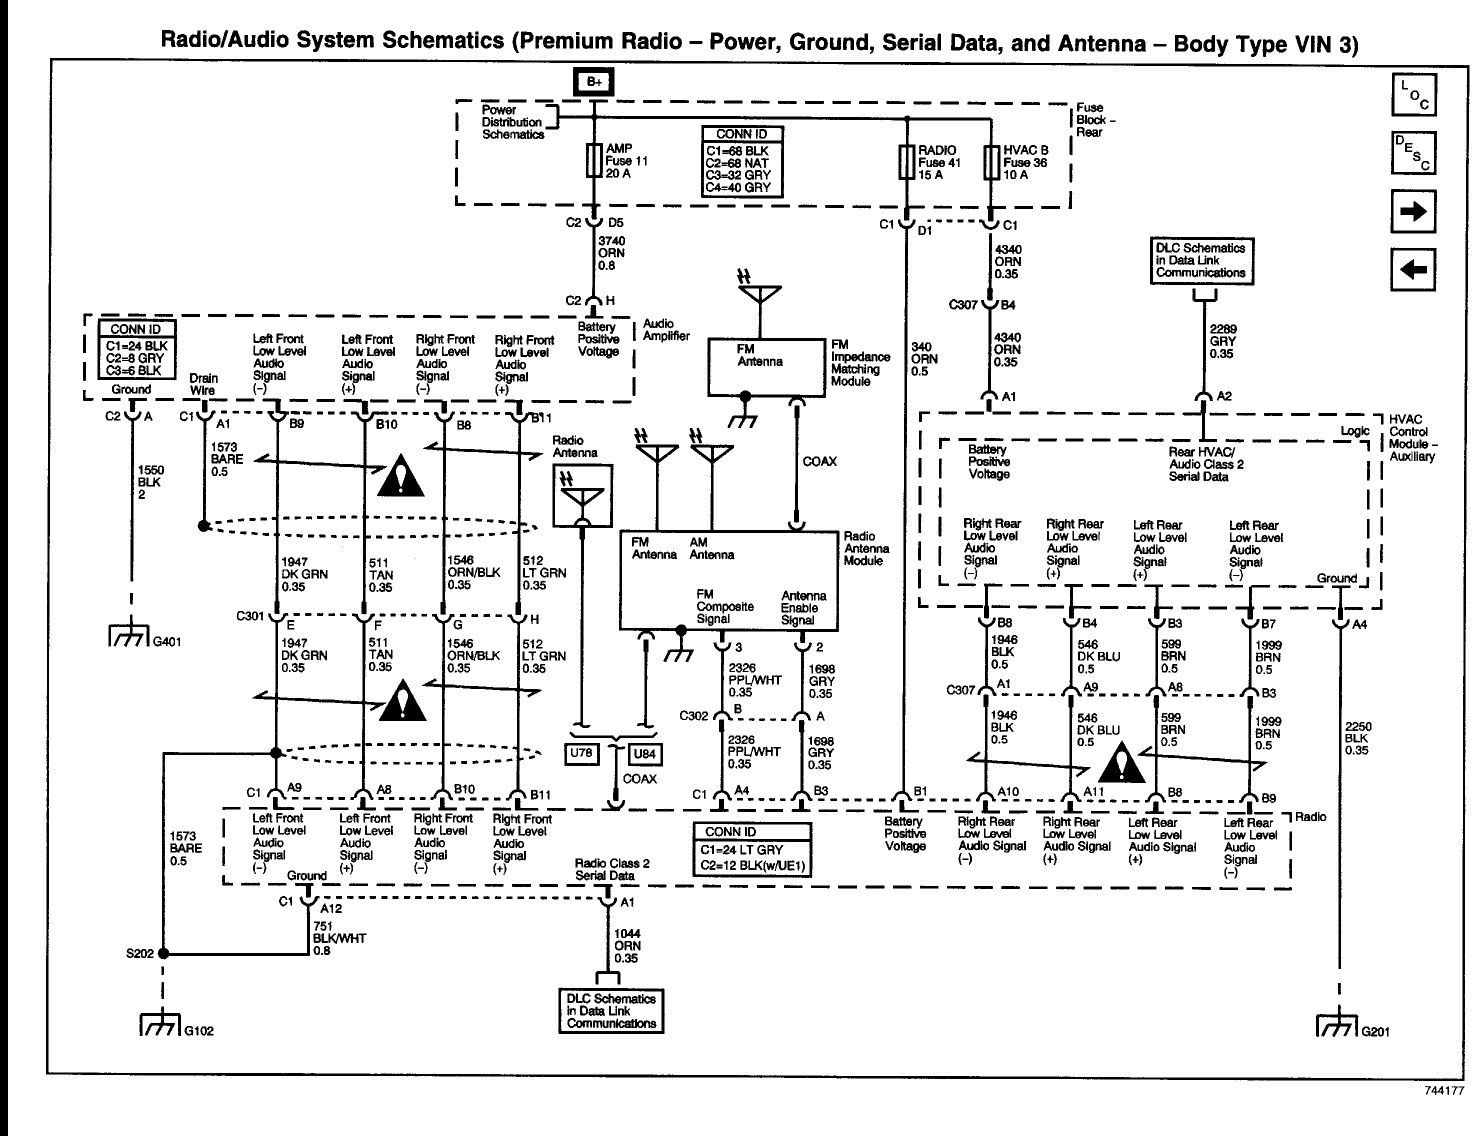 Inspirational 2004 Gmc Envoy Wiring Diagram | Gmc trucks, Gmc truck  accessories, Gmc envoy | 2005 Gmc Sierra Radio Wiring Diagram |  | Pinterest